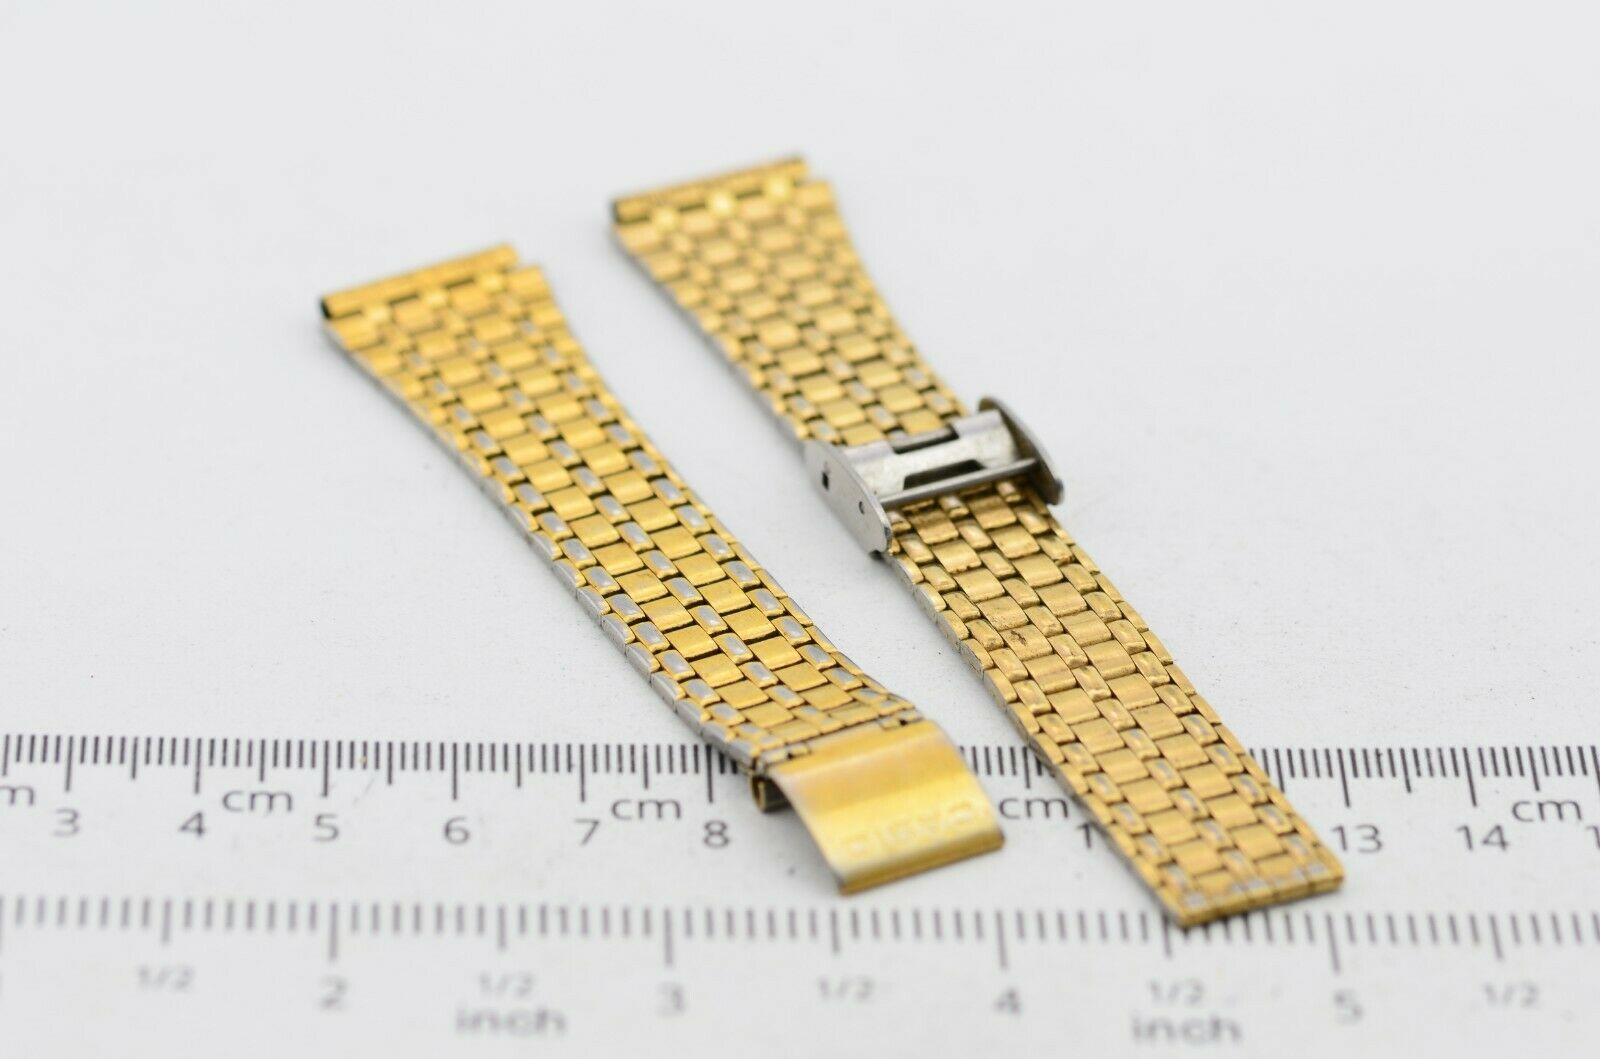 I552 18mm Vintage Casio Watch Band Bracelet Stainless Steel S-315L JDM 57.4